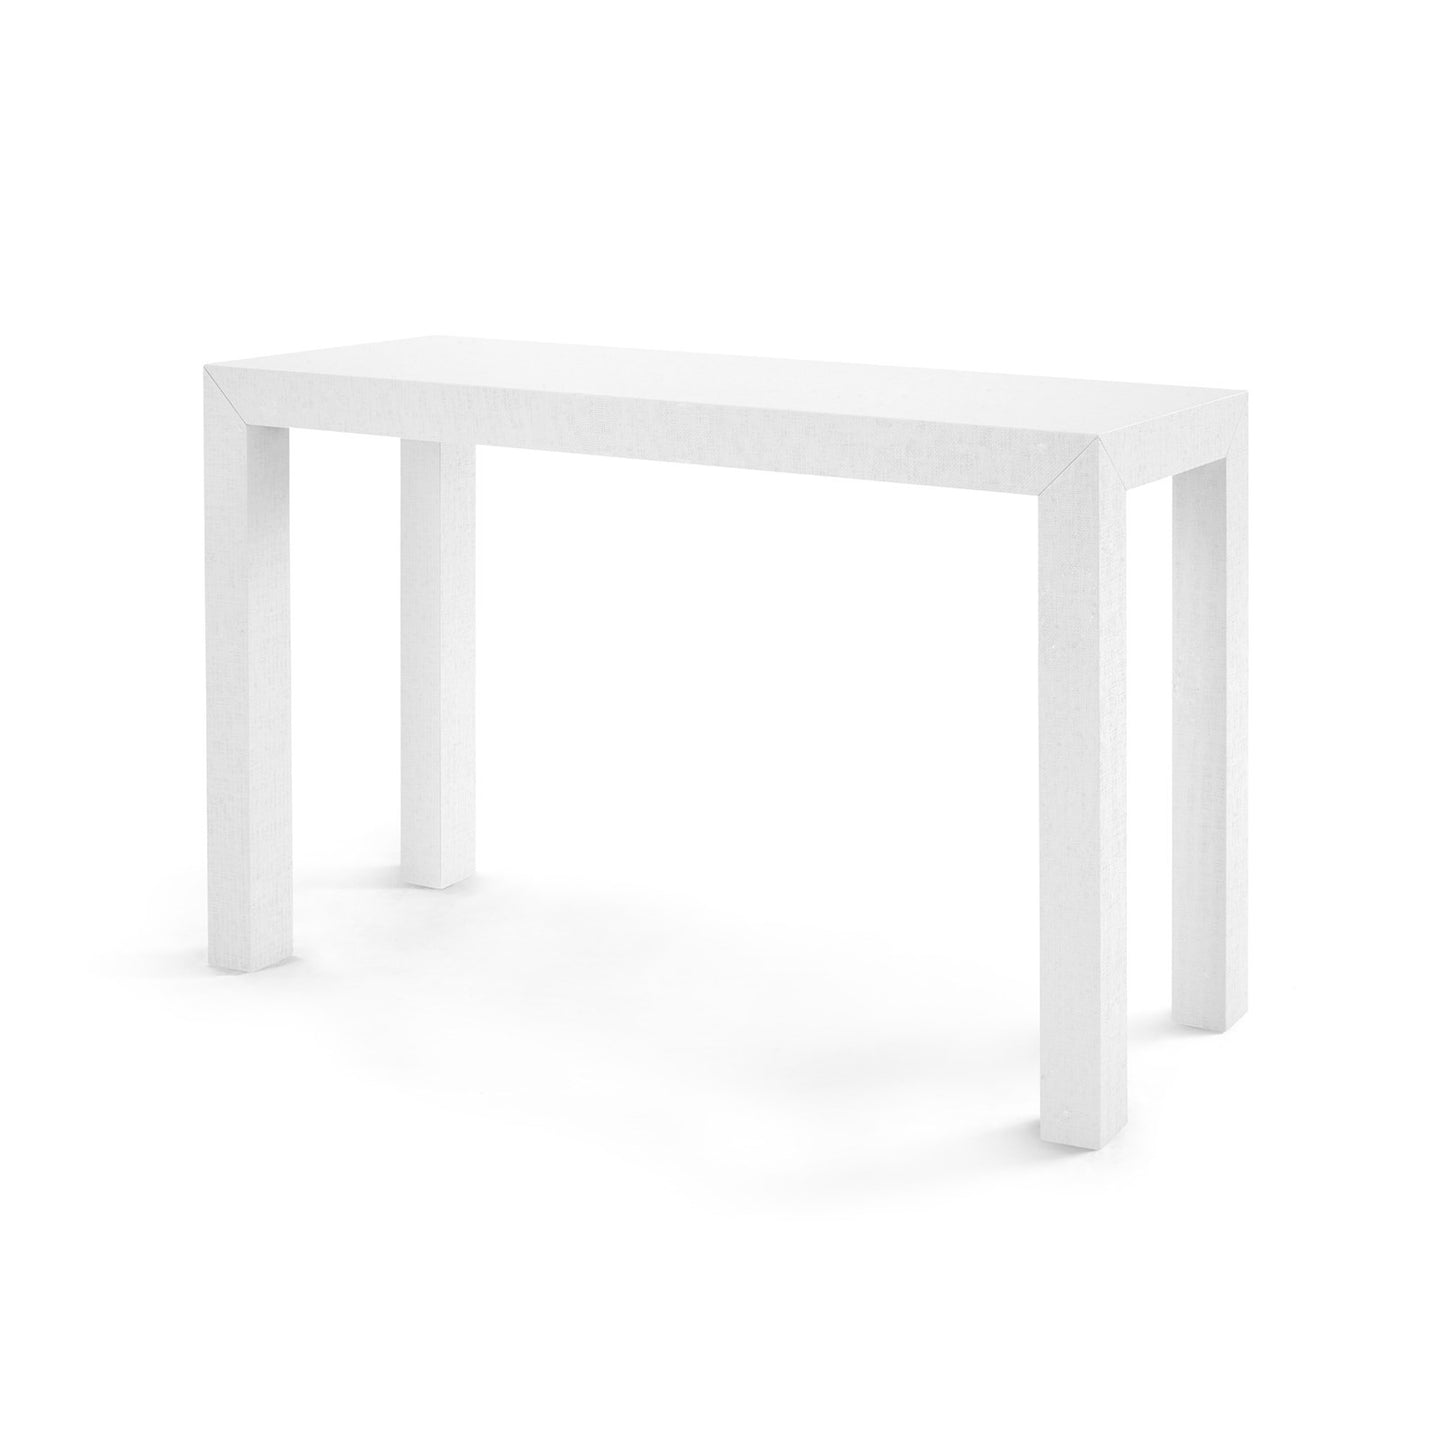 Bungalow 5 Parsons Console Table White PSN 400 59 Console, Console Table,